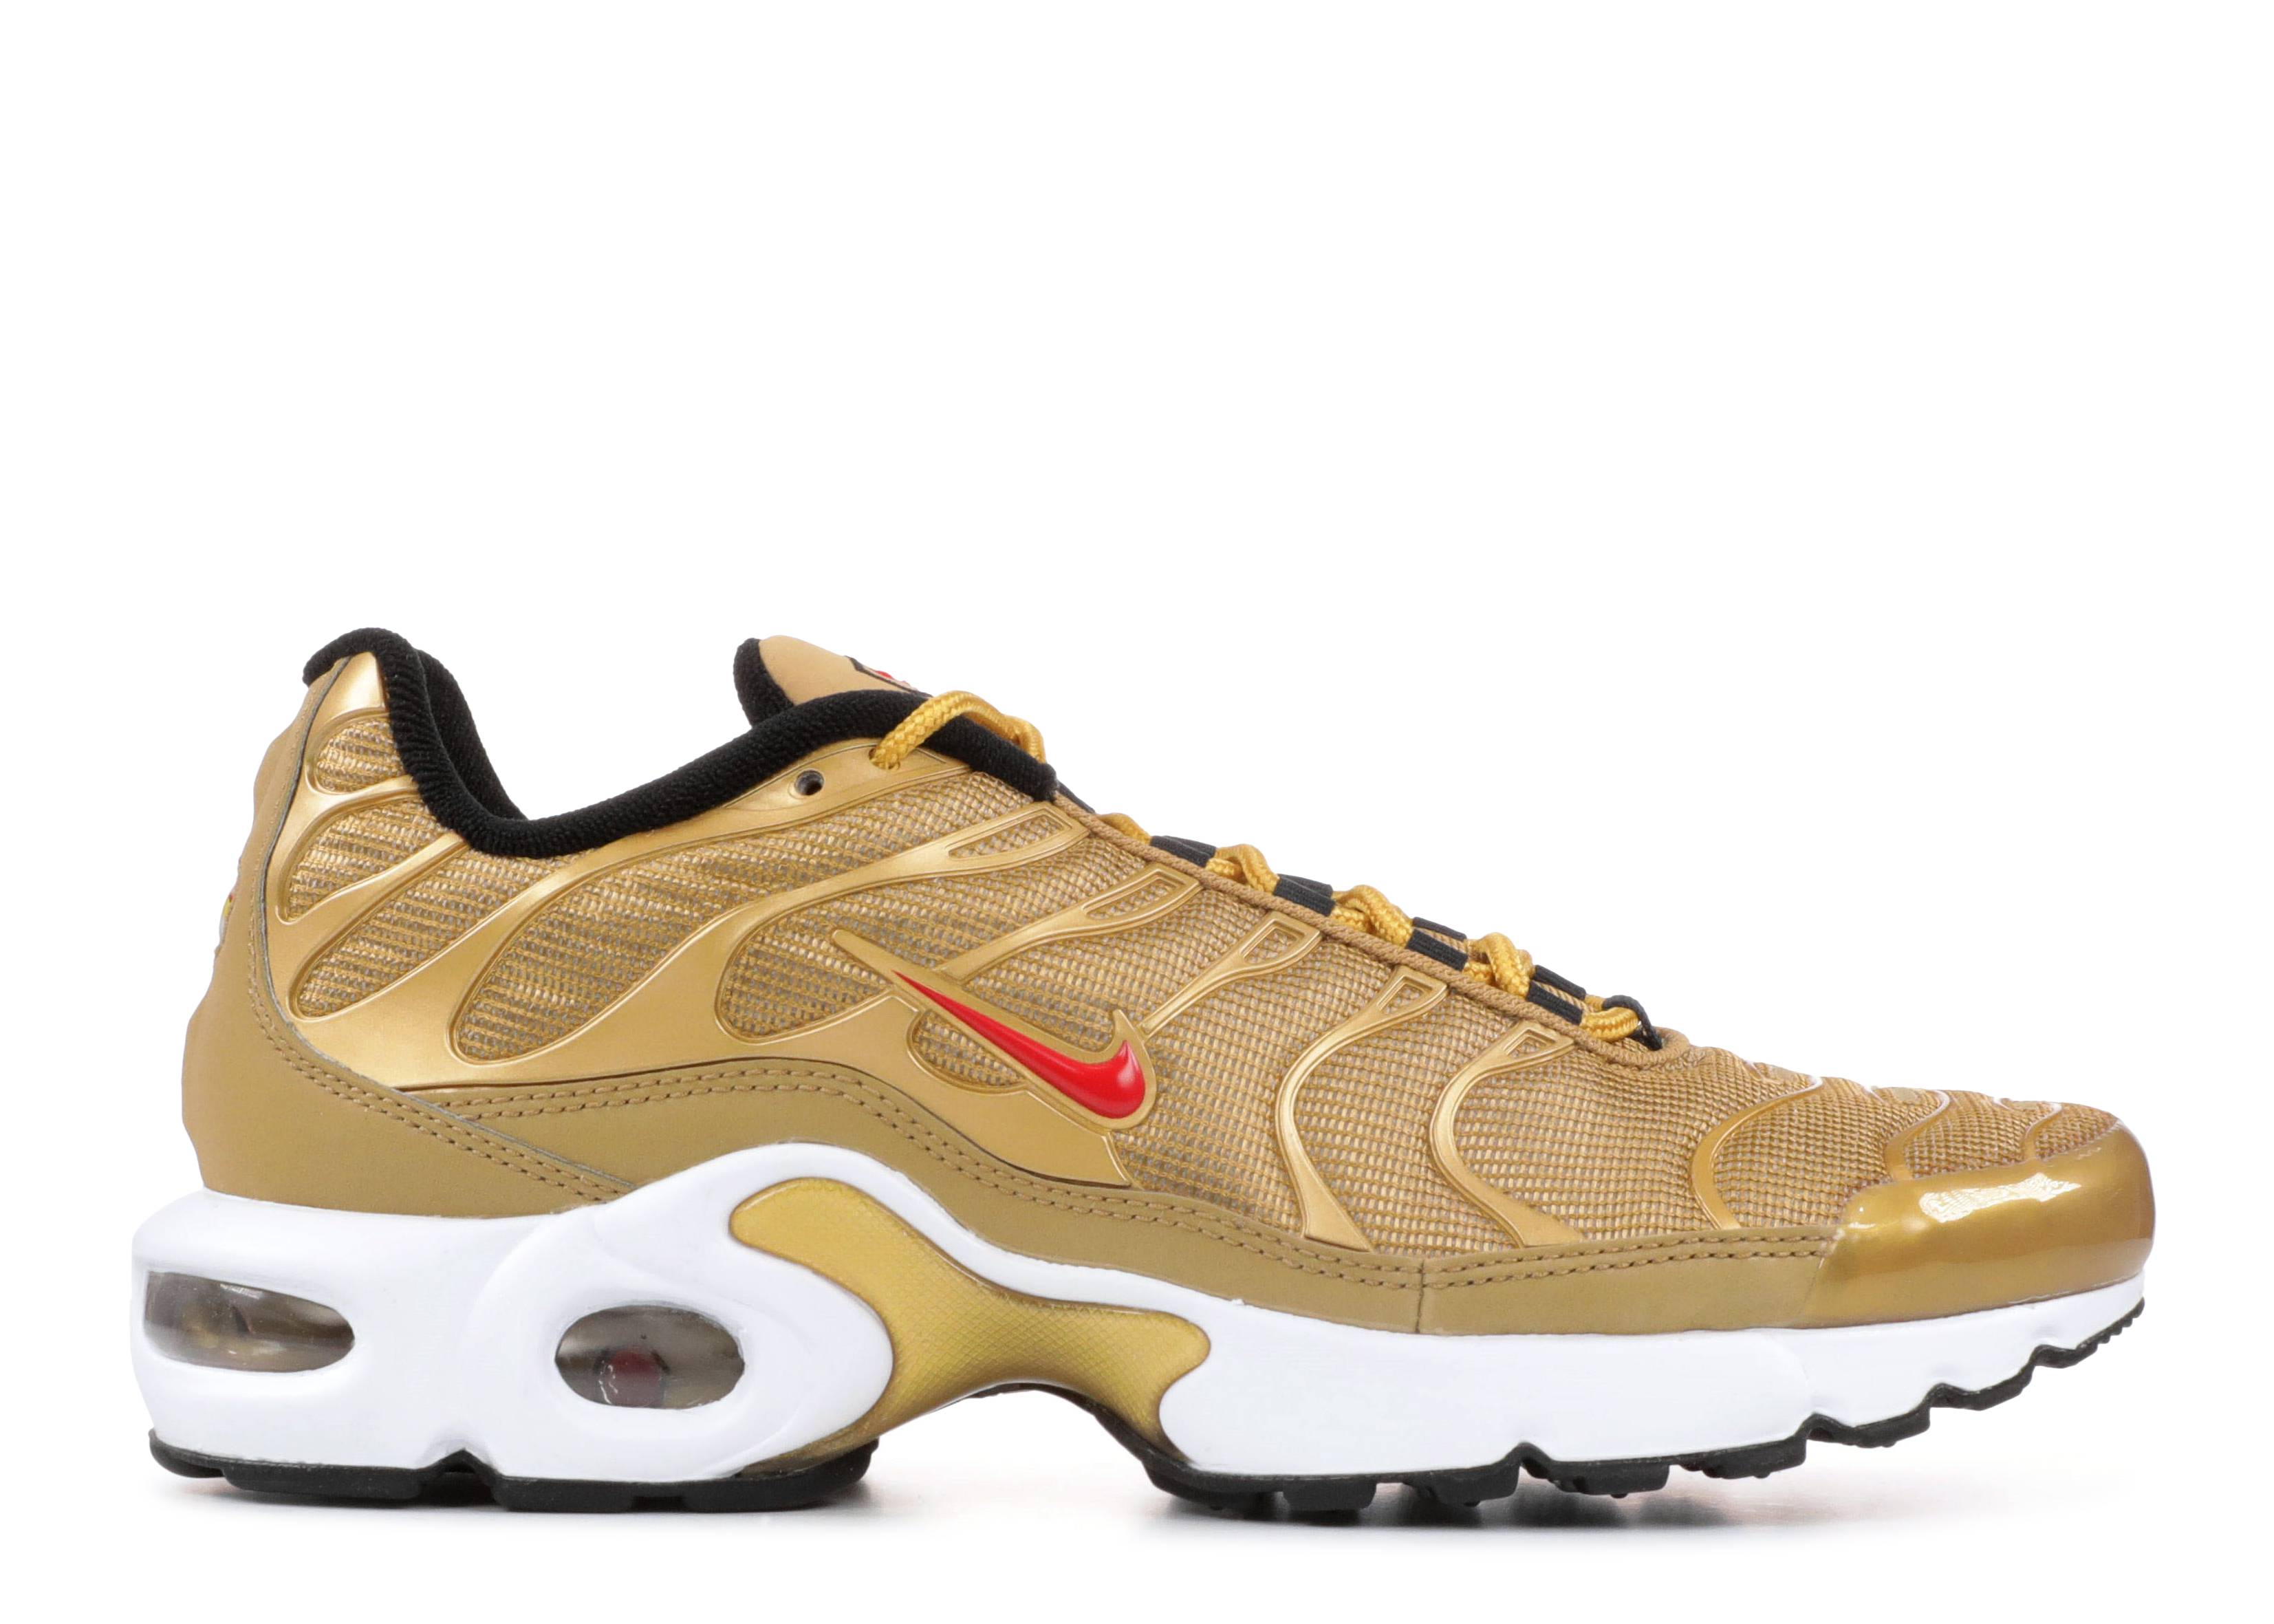 the latest 89d82 f5cc9 Air Max Plus TN SE BG